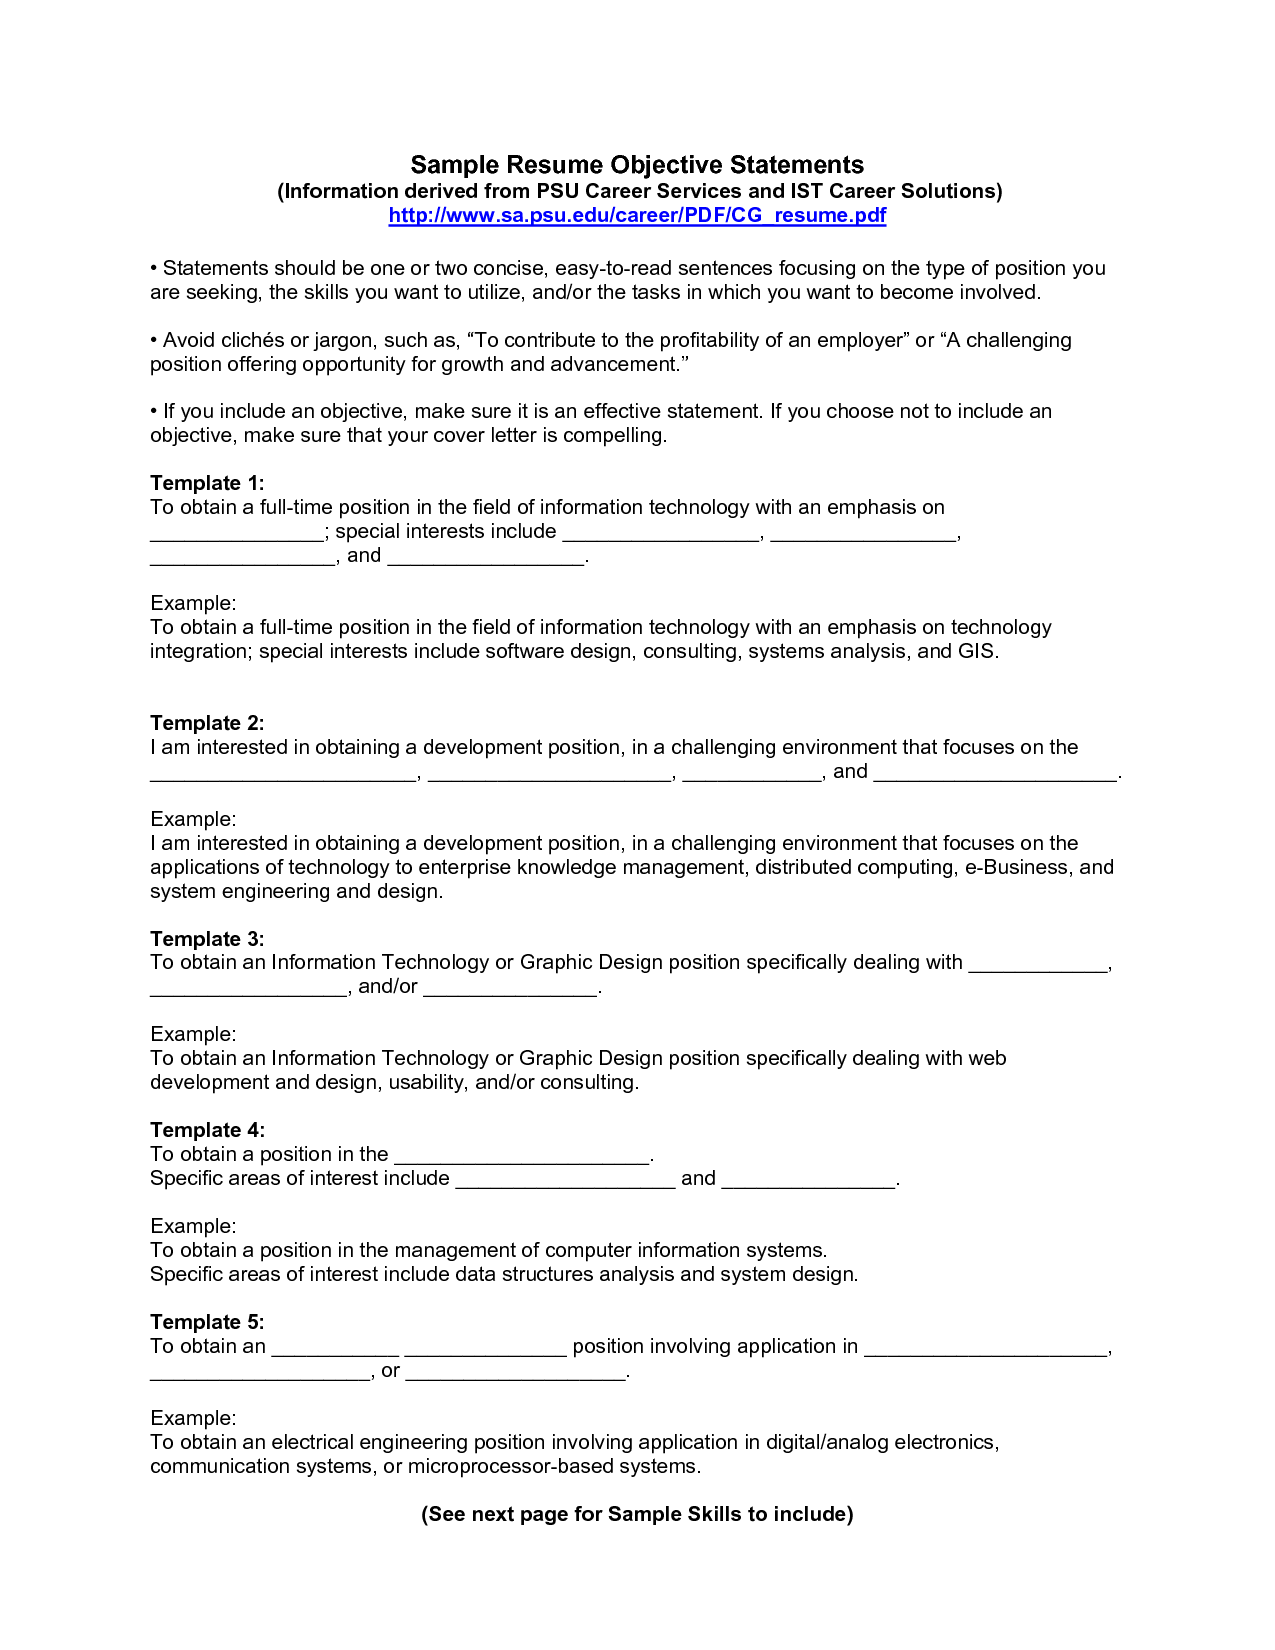 What Is A Good Objective To Write On A Resume Resume Objective Examples Professional Objective Resumes